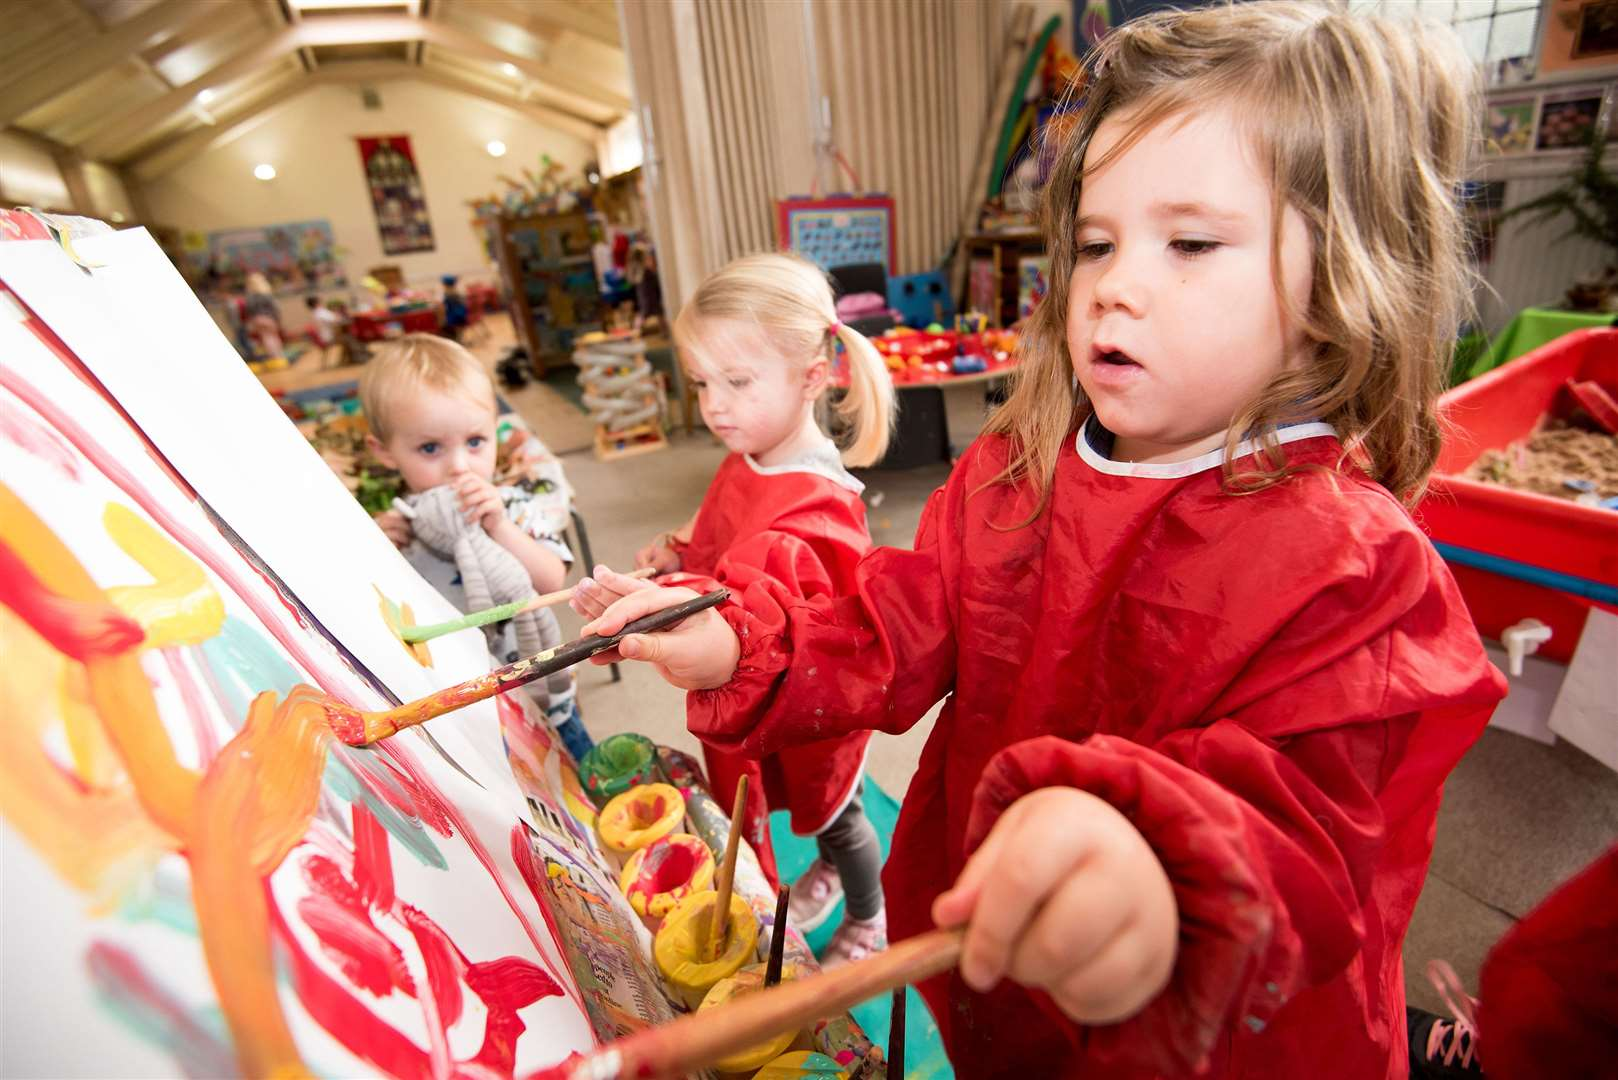 SUDBURY.Playbox pre-school, St John's Church Community Centre, York Rd, Sudbury.Children at Playbox pre-school making autumn-themed collages. Picture by Mark Westley. (18275381)